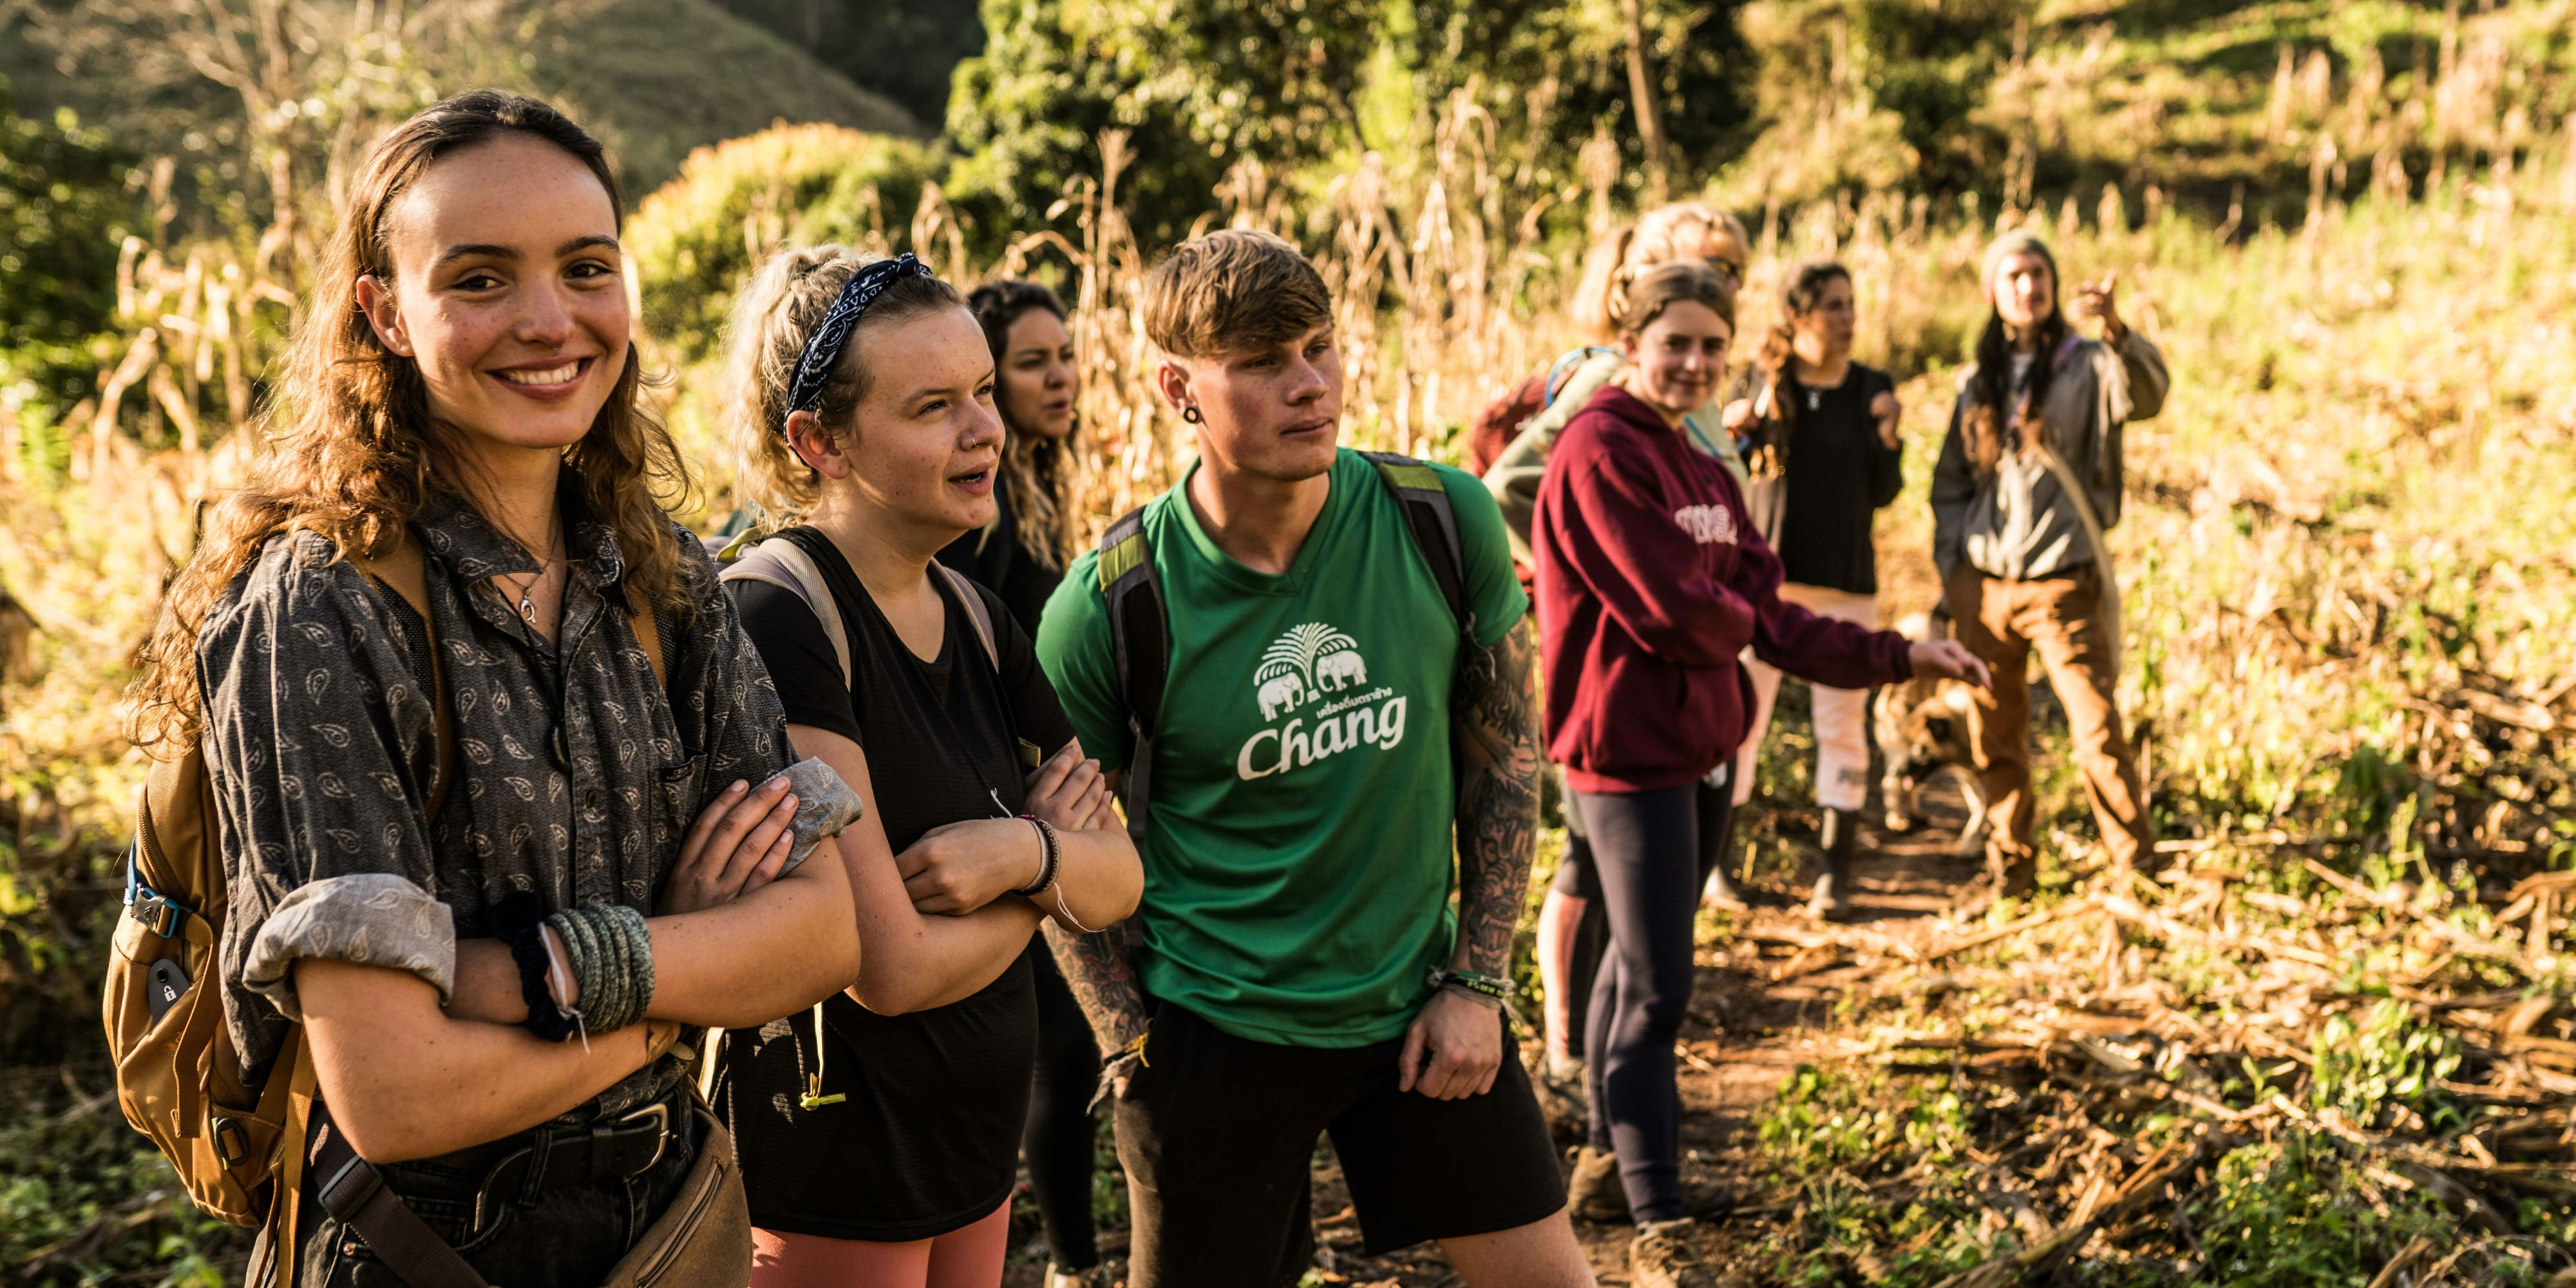 GVI participants complete an elephant hike in Chiang Mai. Chiang Mai is the perfect solution for graduates looking for gap year adventure travel.